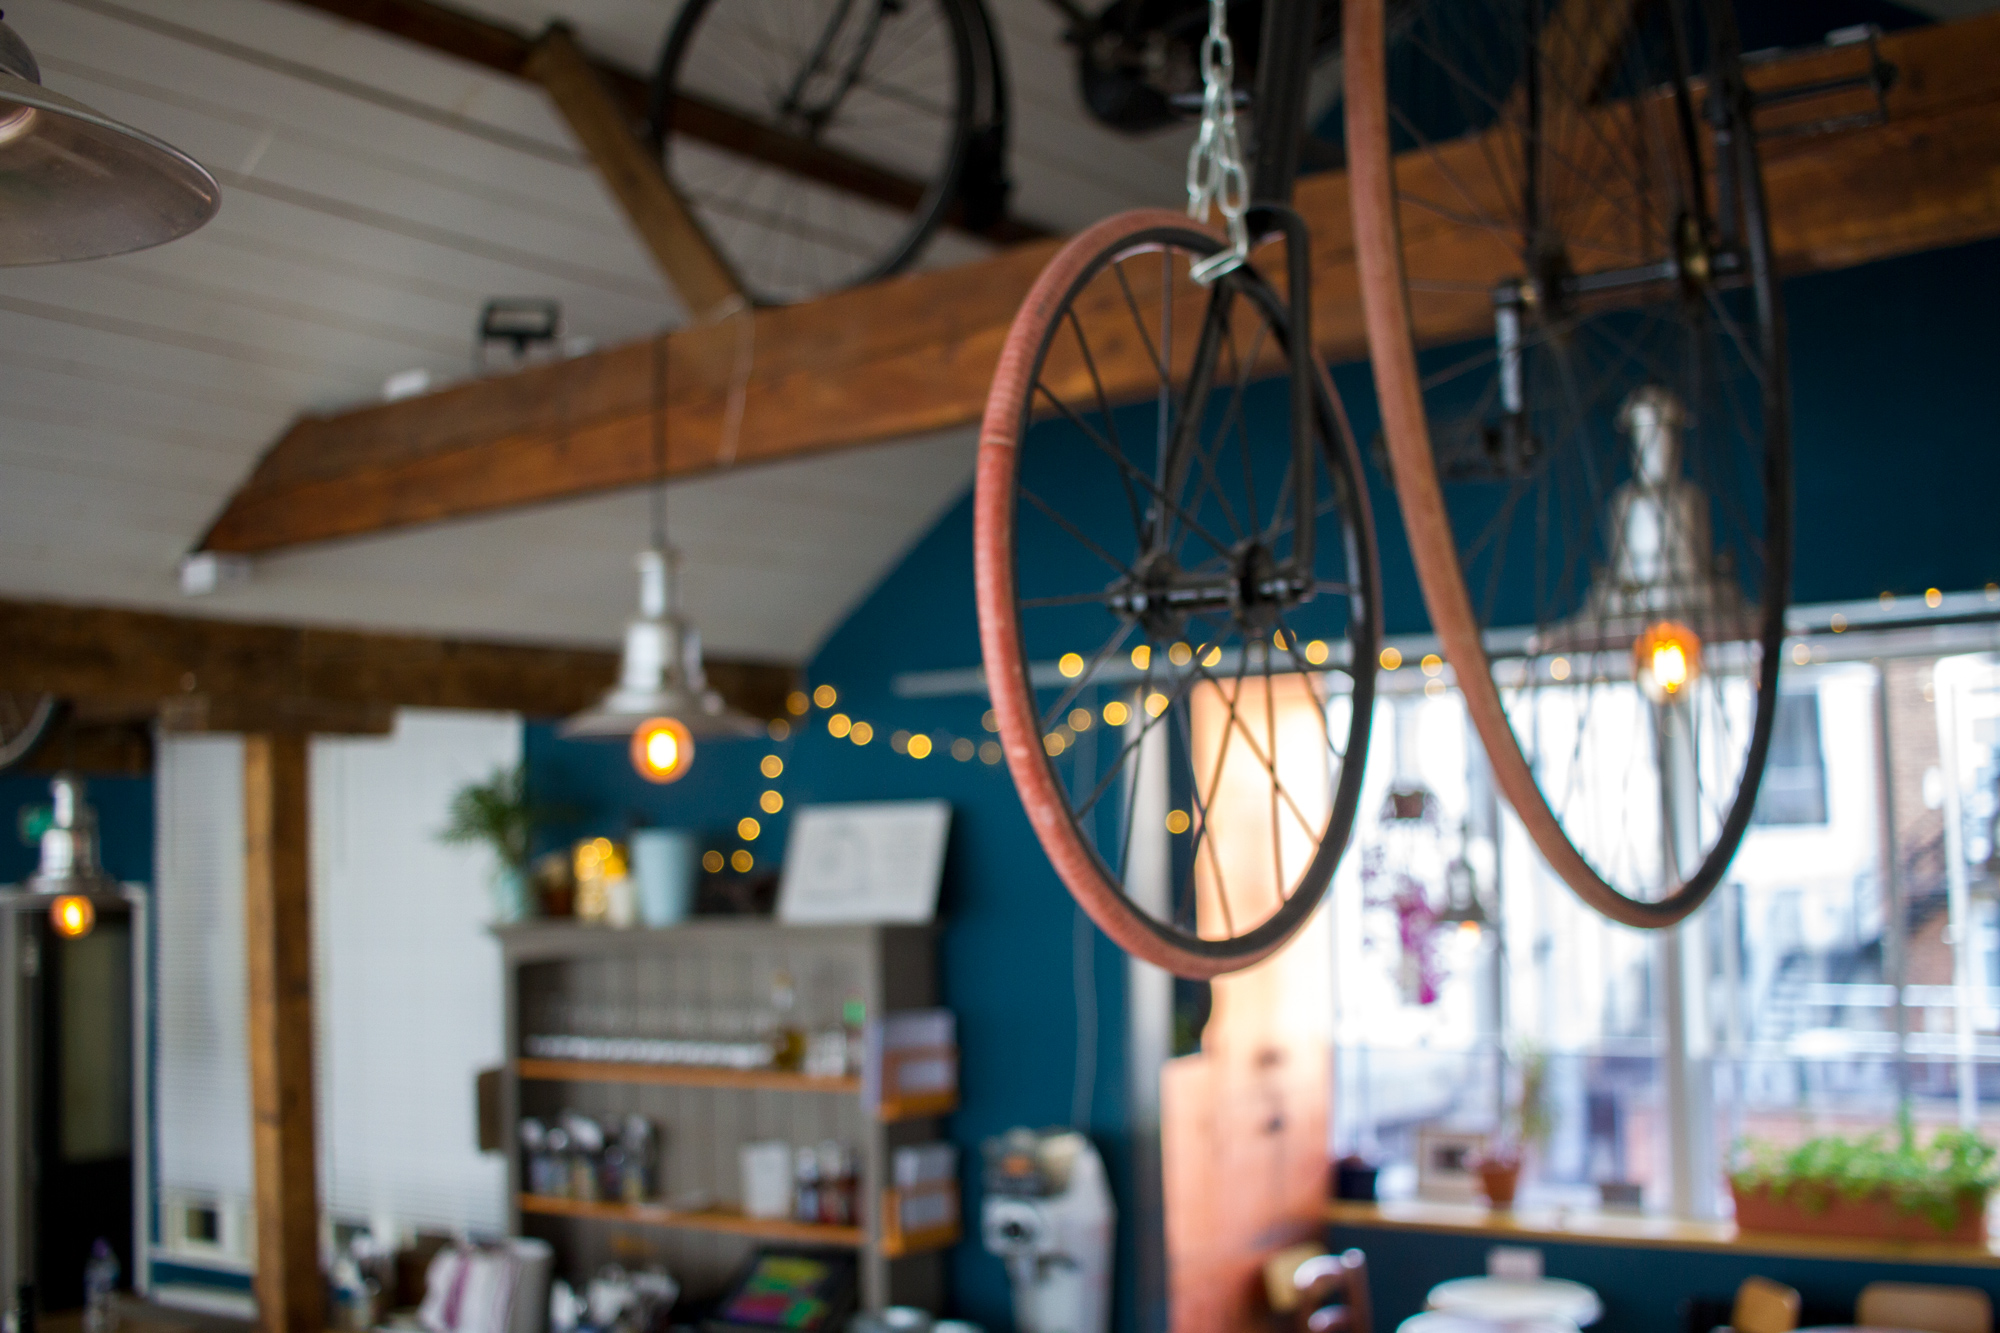 The Handle Bar Cafe and Kitchen - A cosy restaurant, cafe and bar in central Oxford serving breakfasts, brunches, lunches and dinners that have been made with love.